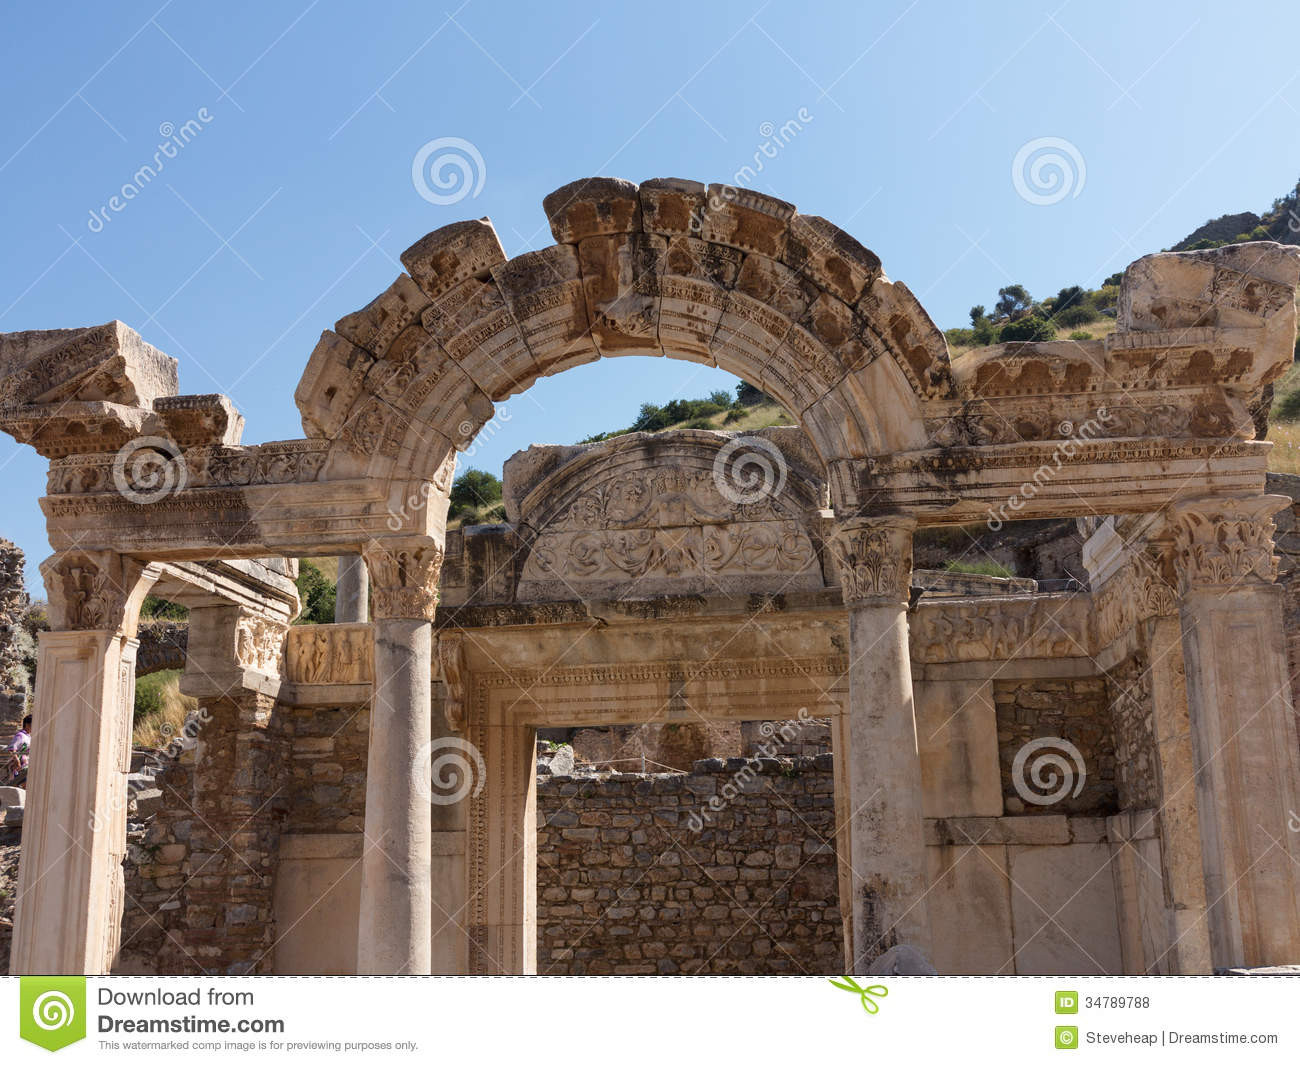 """an analysis of the ancient ruins and structures in greece Emperor theodosius ii closes pagan temples in greece (435) emperor justinian   on the ruins of missolonghi (1827) and stirs foreign sympathy for greek cause   here the ekklisia (from the ancient greek, meaning """"assembly"""") or laos."""